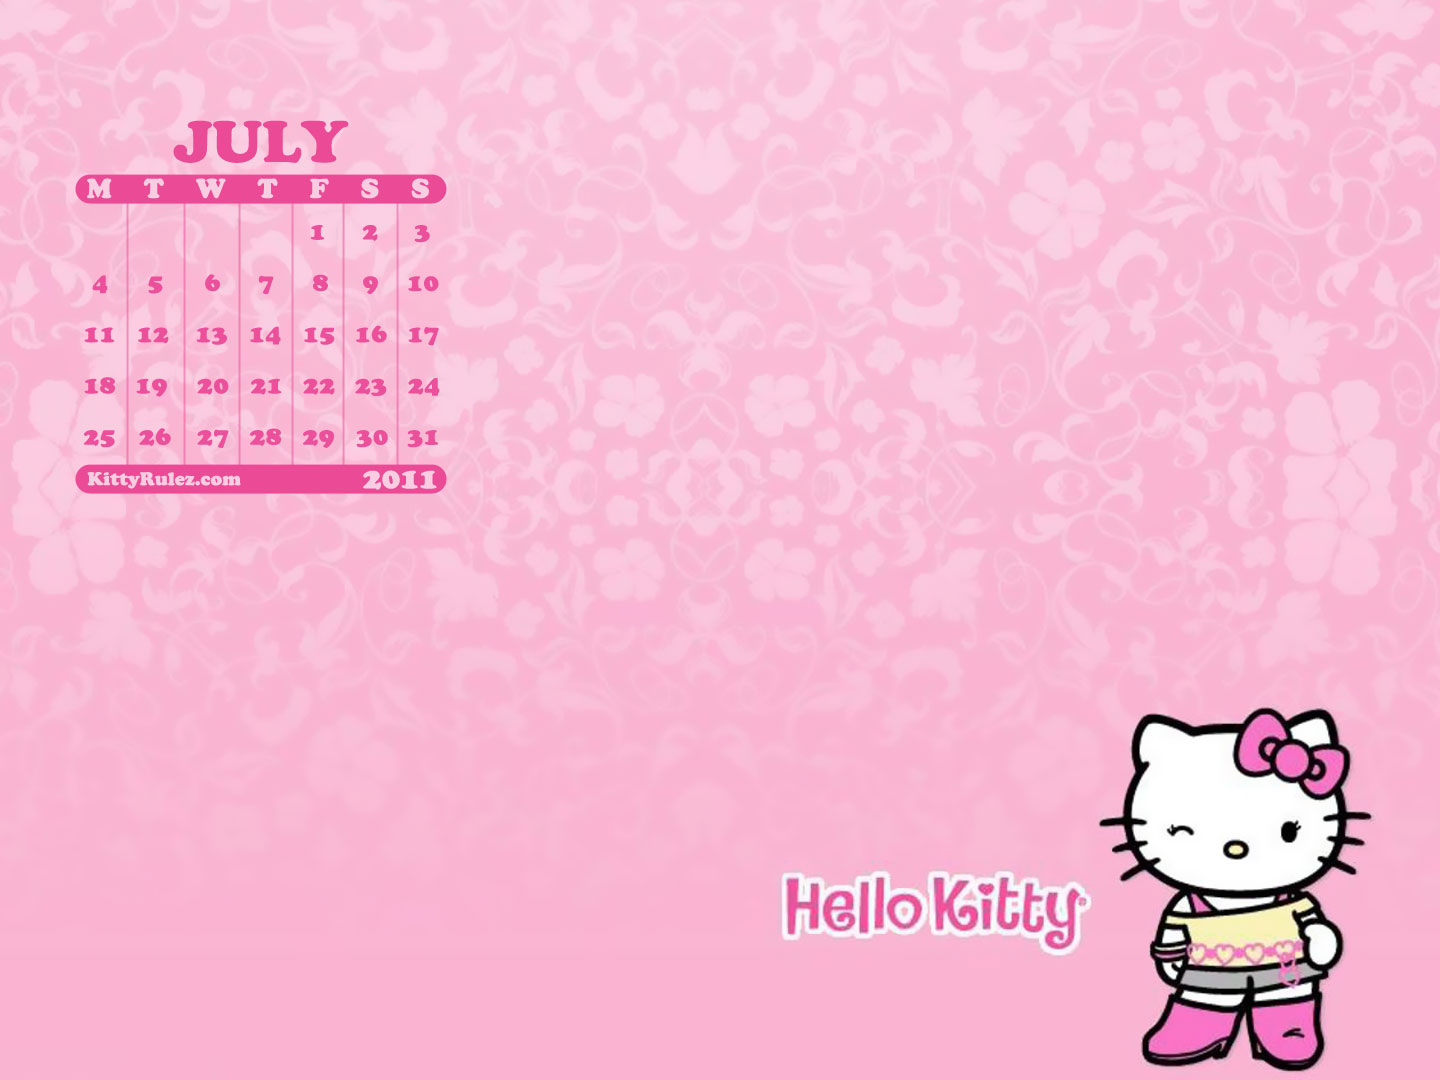 Hello kitty July 2011 Desktop Calendar Wallpaper Kittyrulez 1440x1080